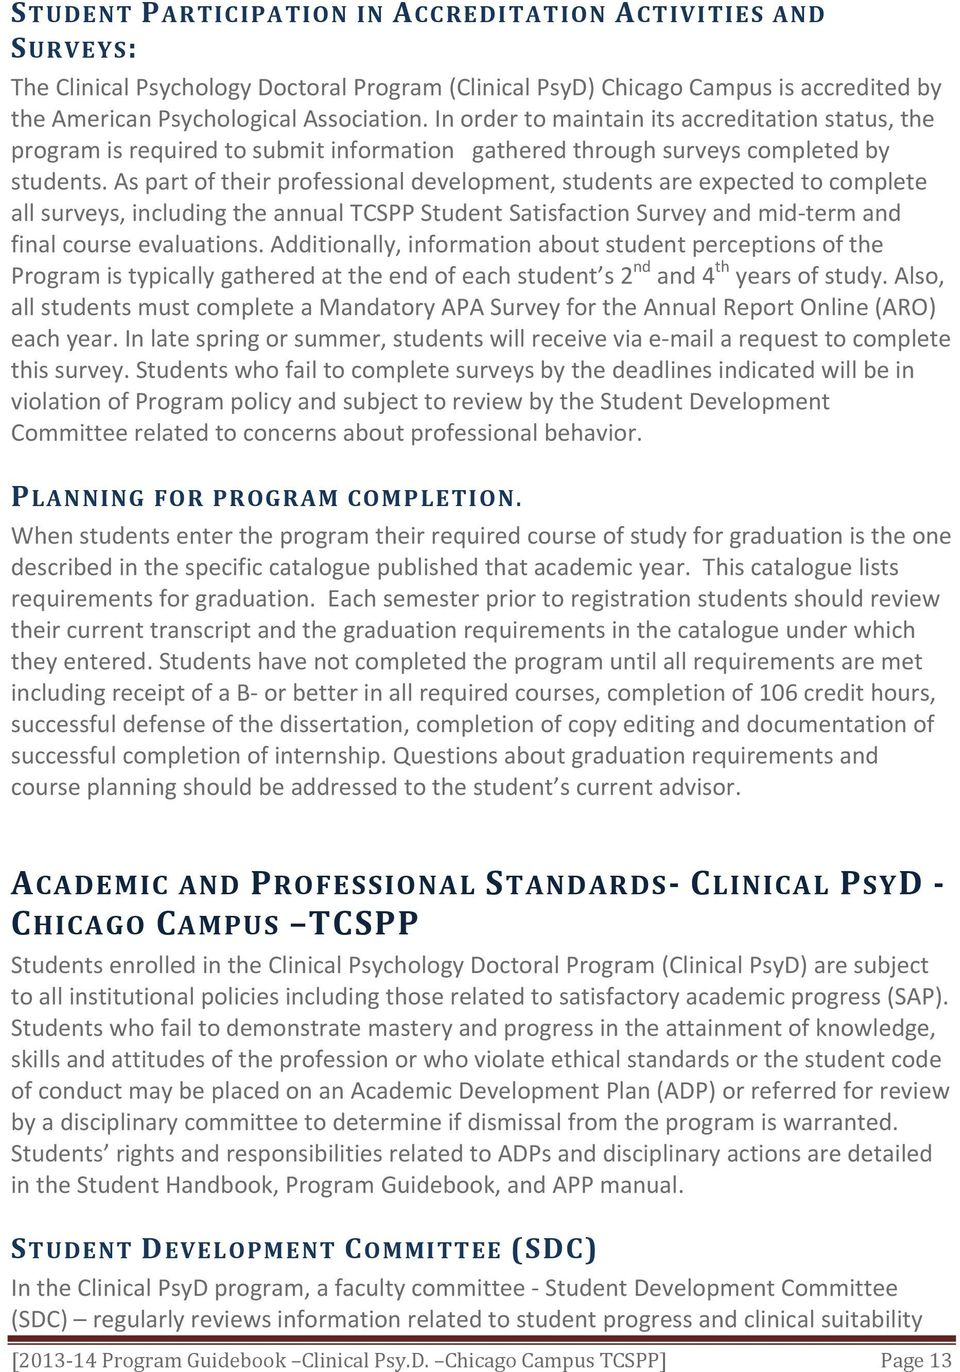 As part of their professional development, students are expected to complete all surveys, including the annual TCSPP Student Satisfaction Survey and mid term and final course evaluations.